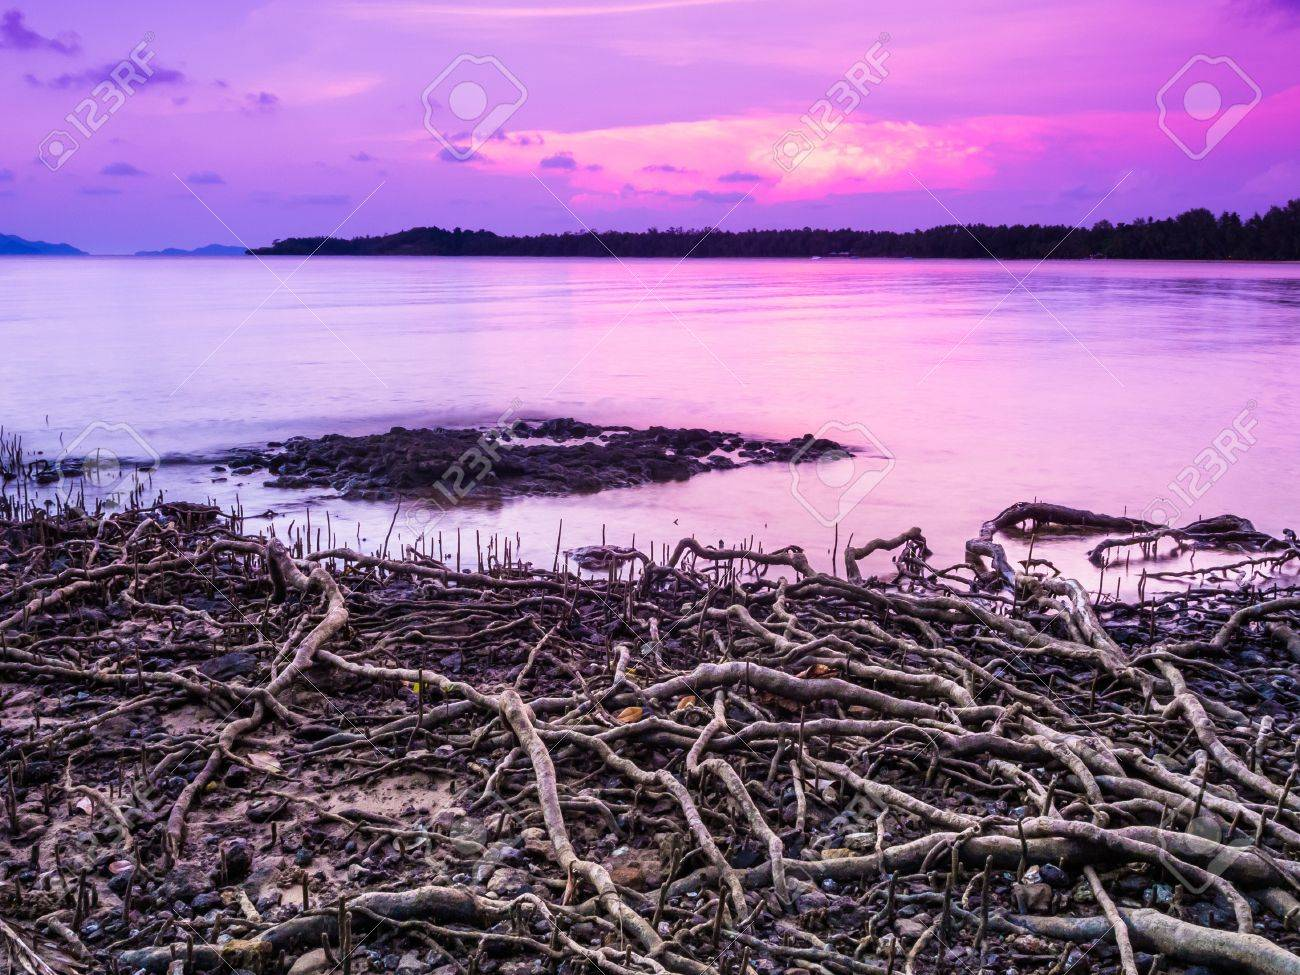 Beach With Roots On Sea Sky Purple Sunset Beach Covered By Stock Photo Picture And Royalty Free Image Image 20884394